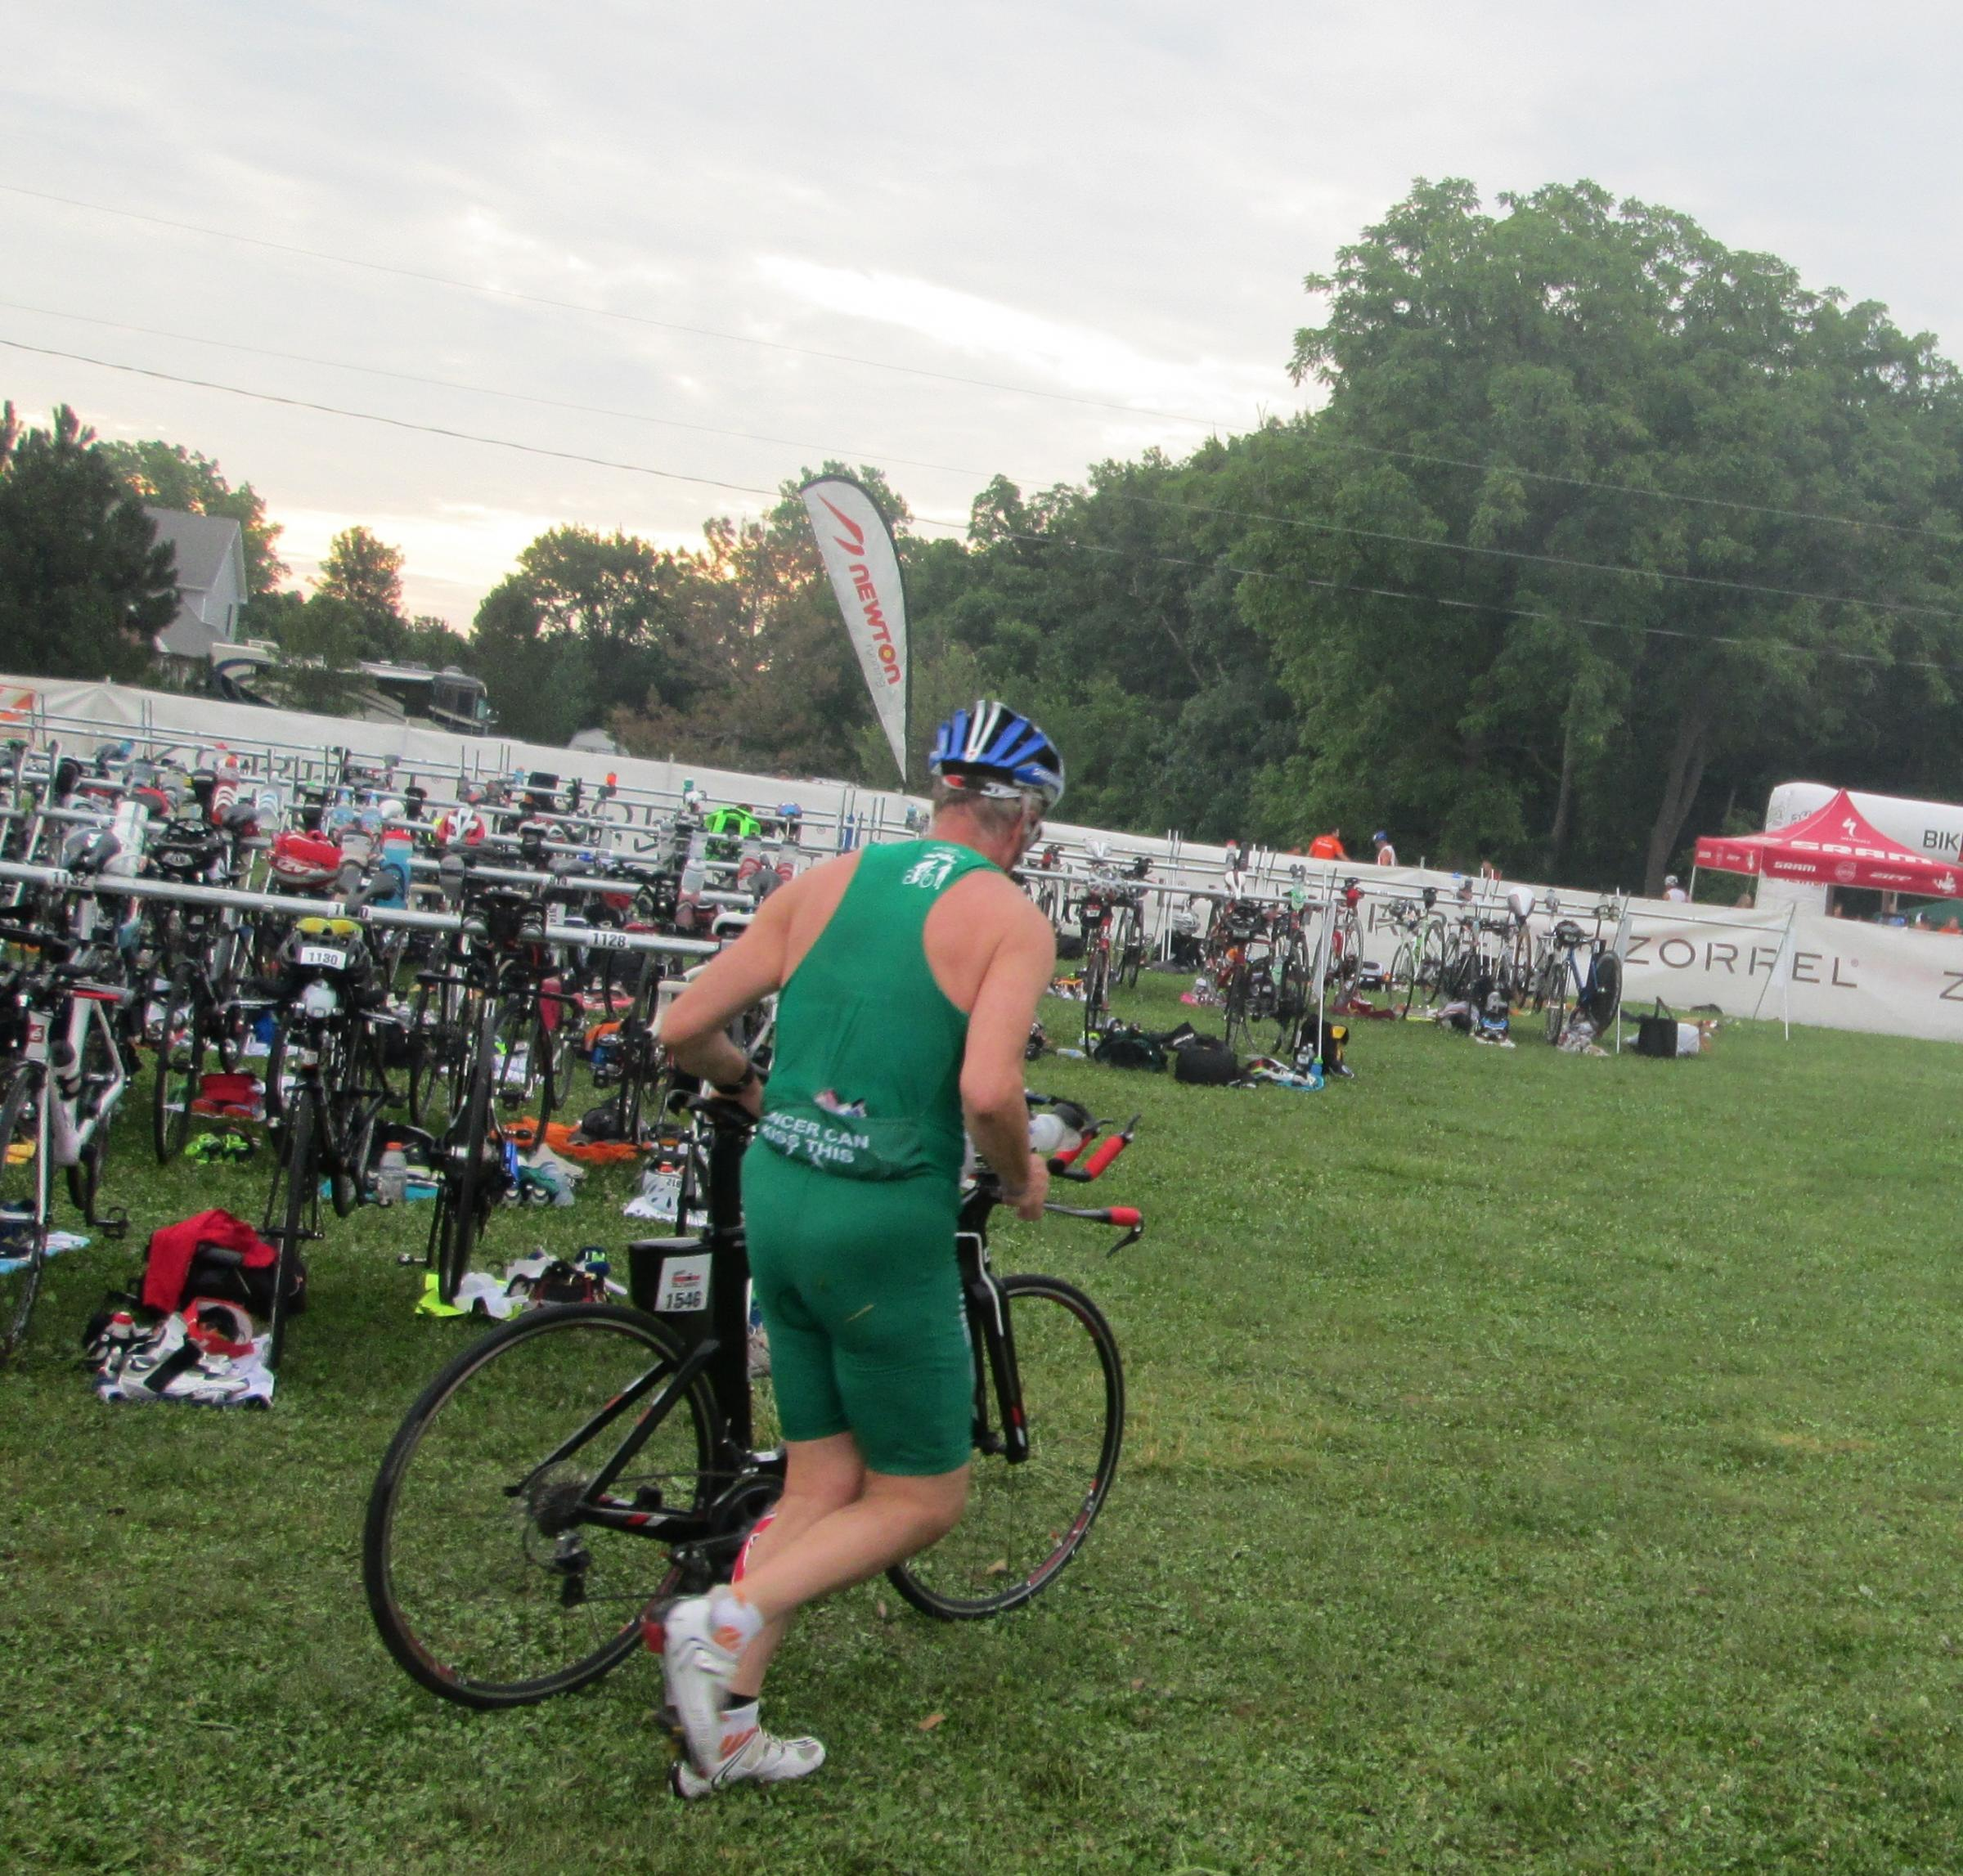 Worcester Fundraiser Thwarted By Bike Theft.